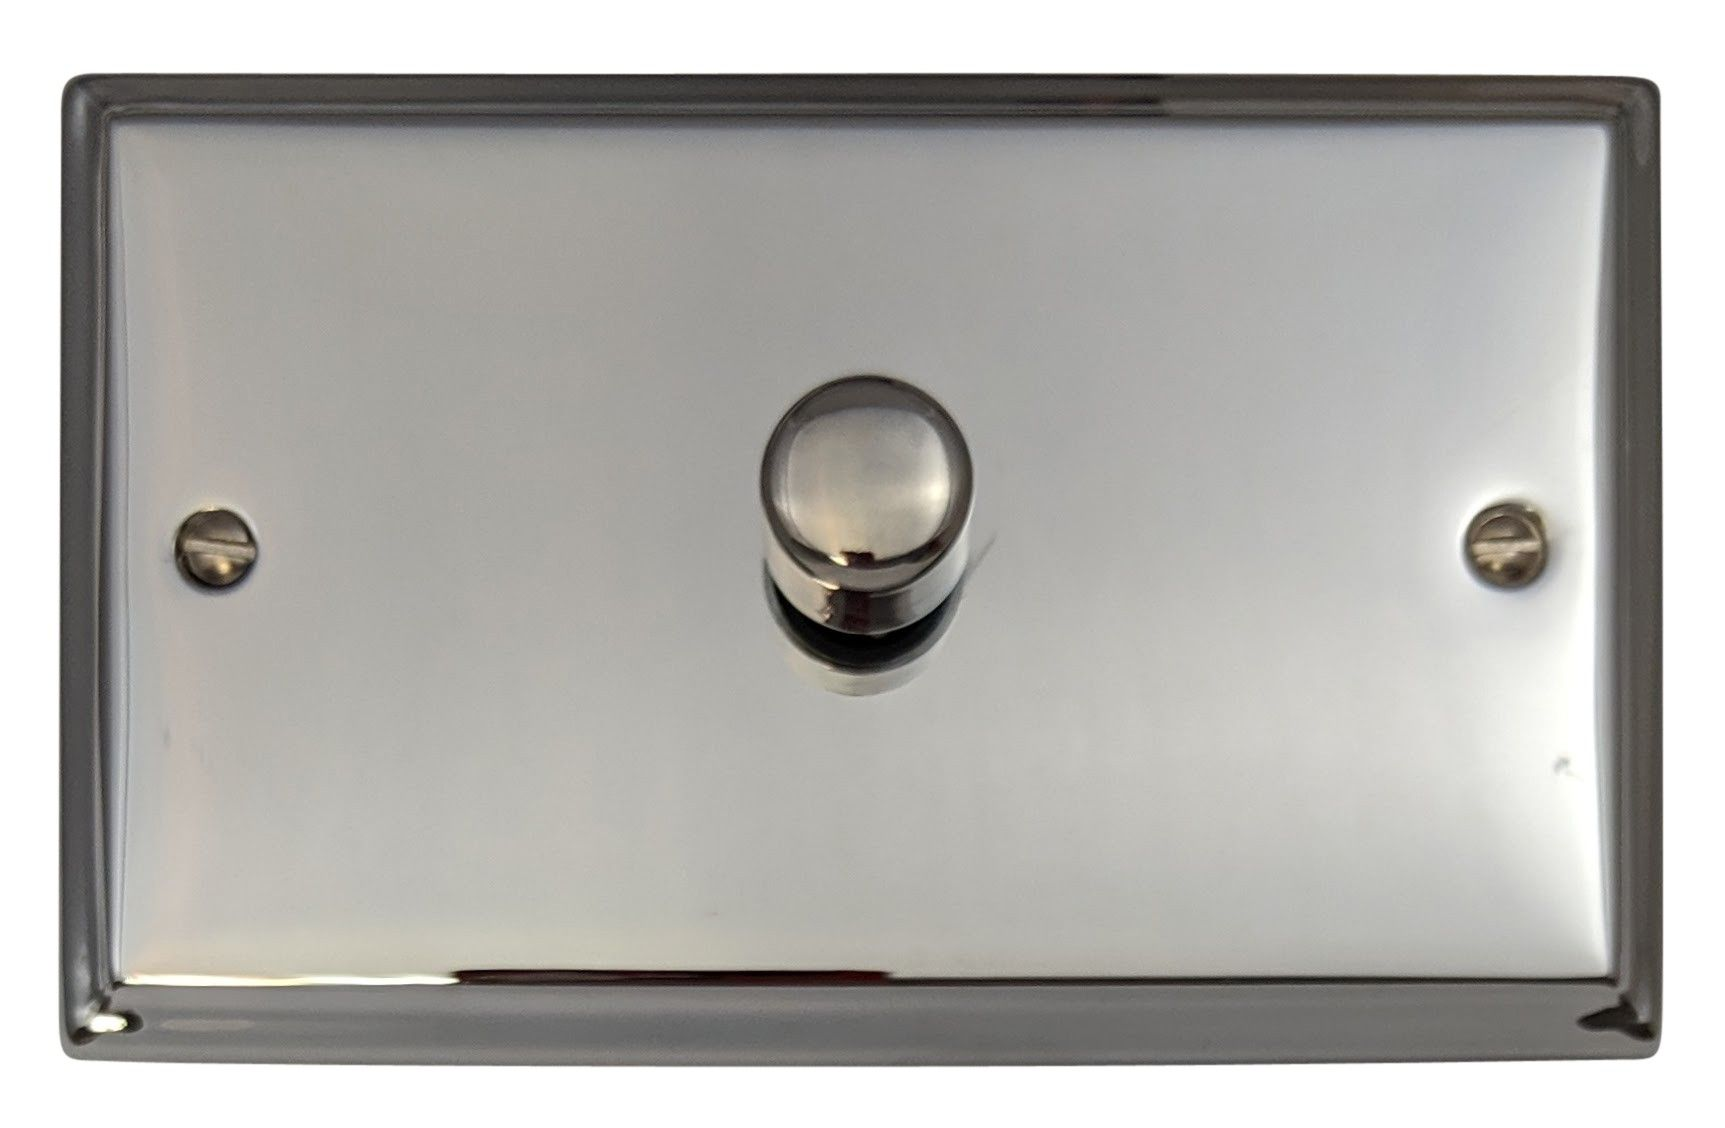 G&H DC16 Deco Plate Polished Chrome 1 Gang 1 or 2 Way 700W Dimmer Switch Double Plate